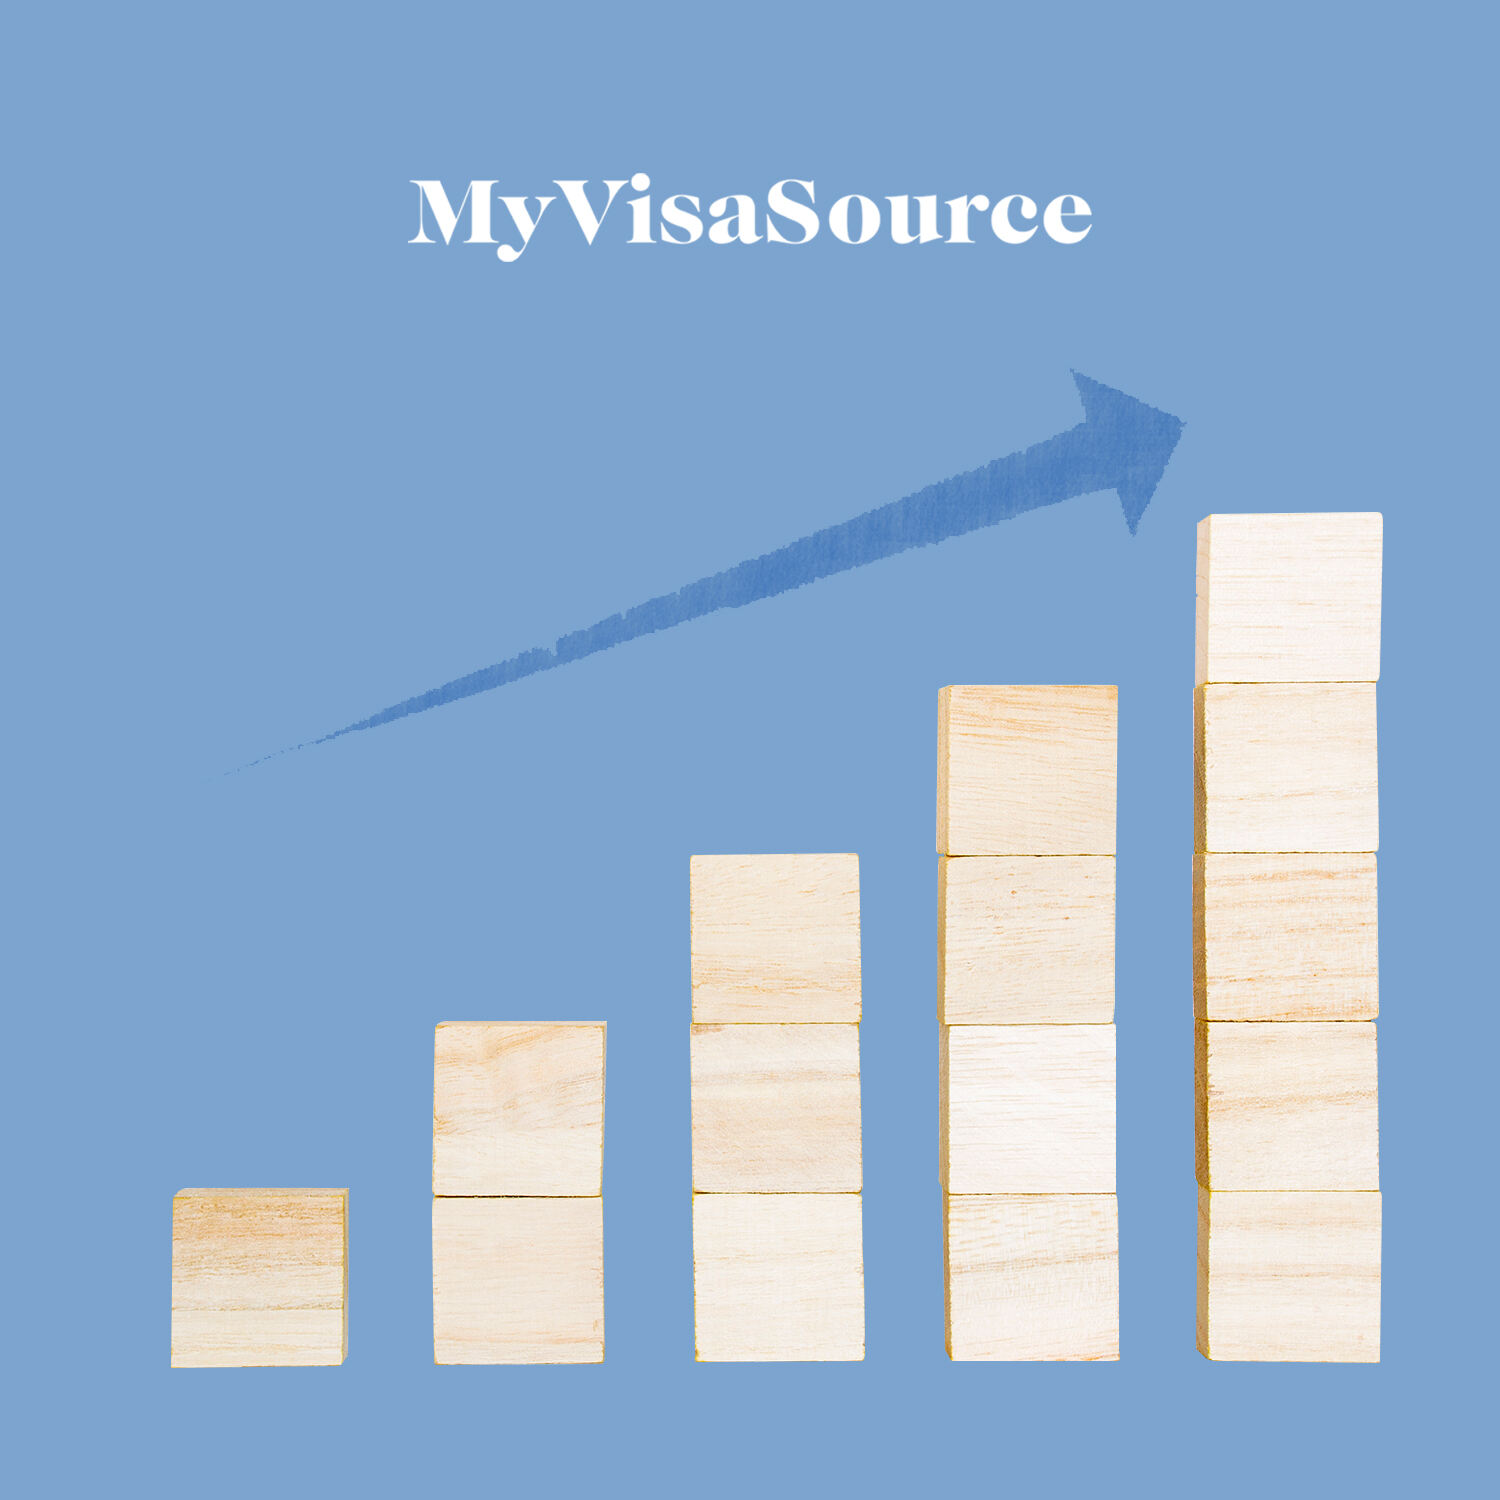 blocks arranged from left to right in ascending order with an arrow going right my visa source